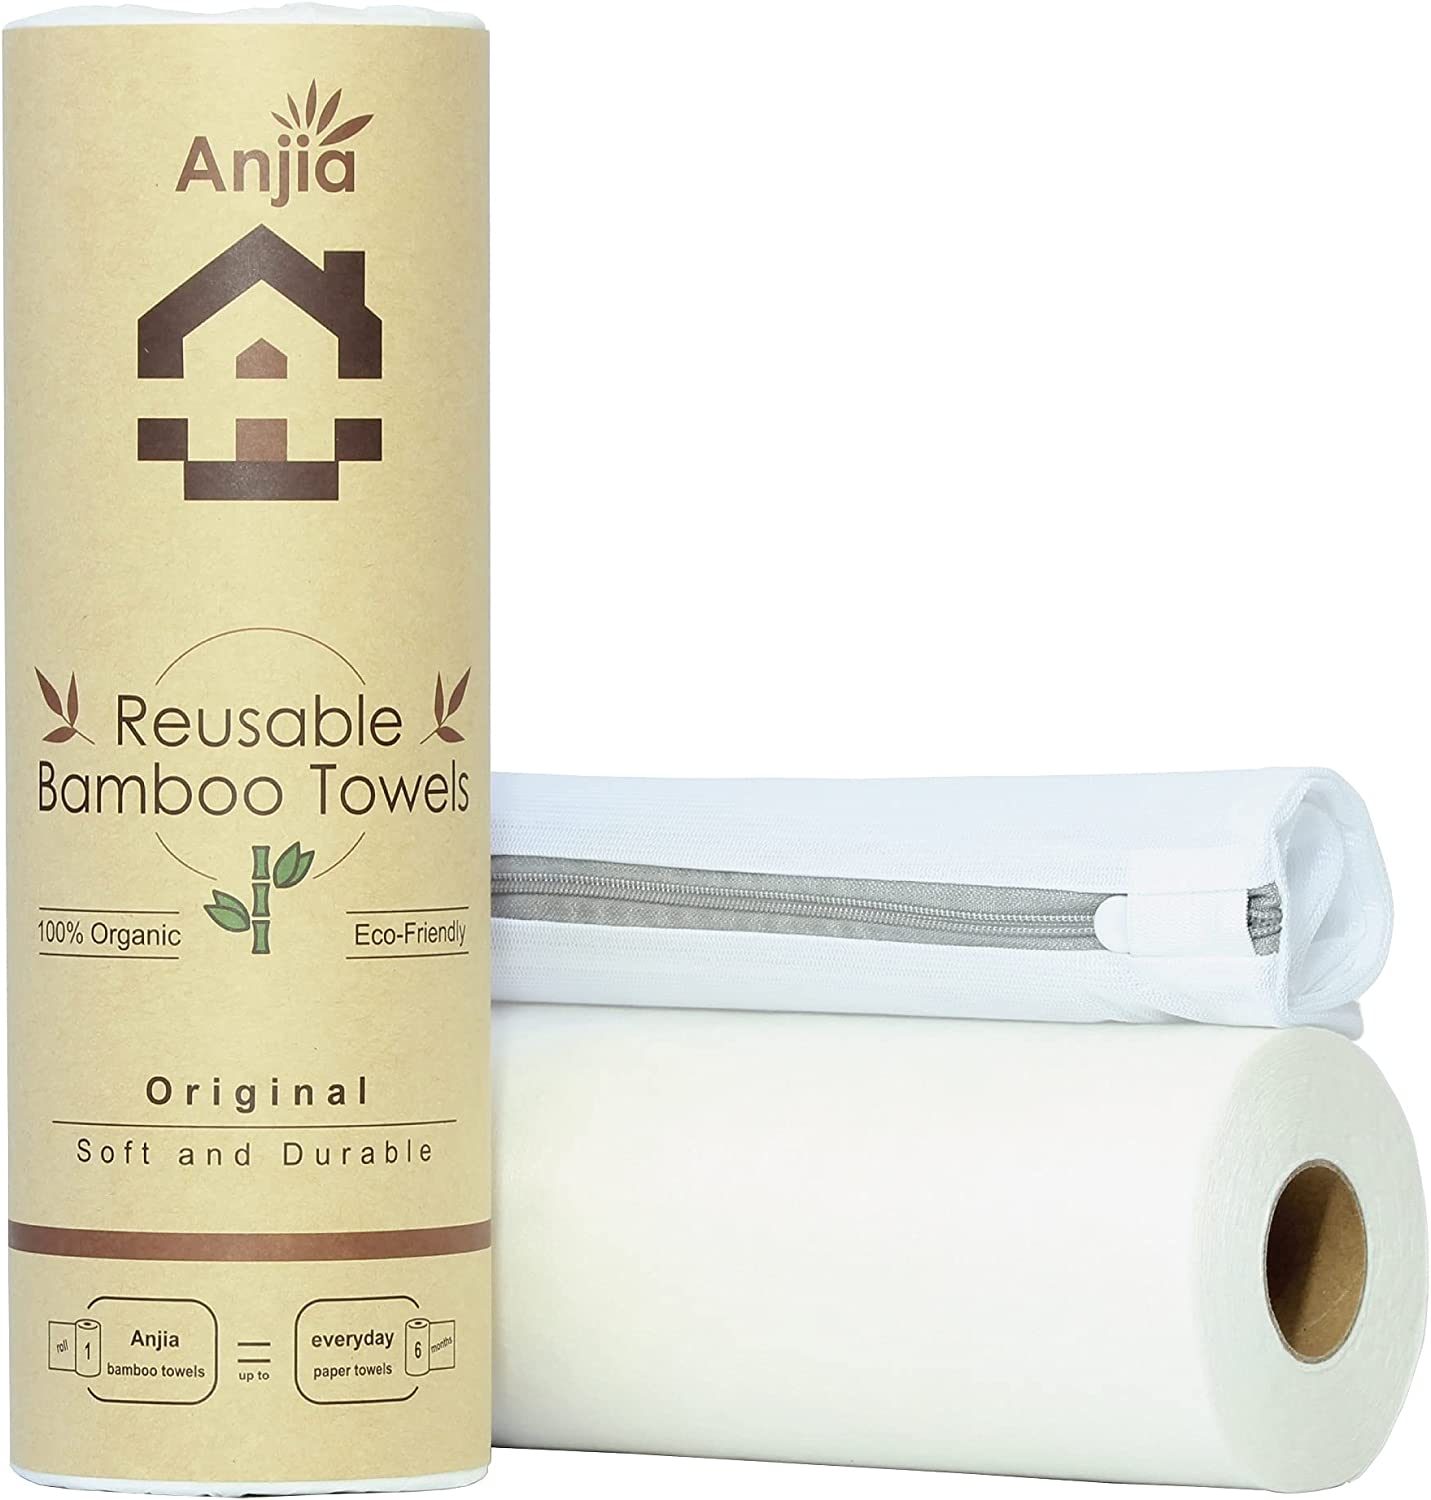 Anjia Original Reusable Bamboo Towels - Wash 50 Shipping included Attention brand In Bag A Sheets